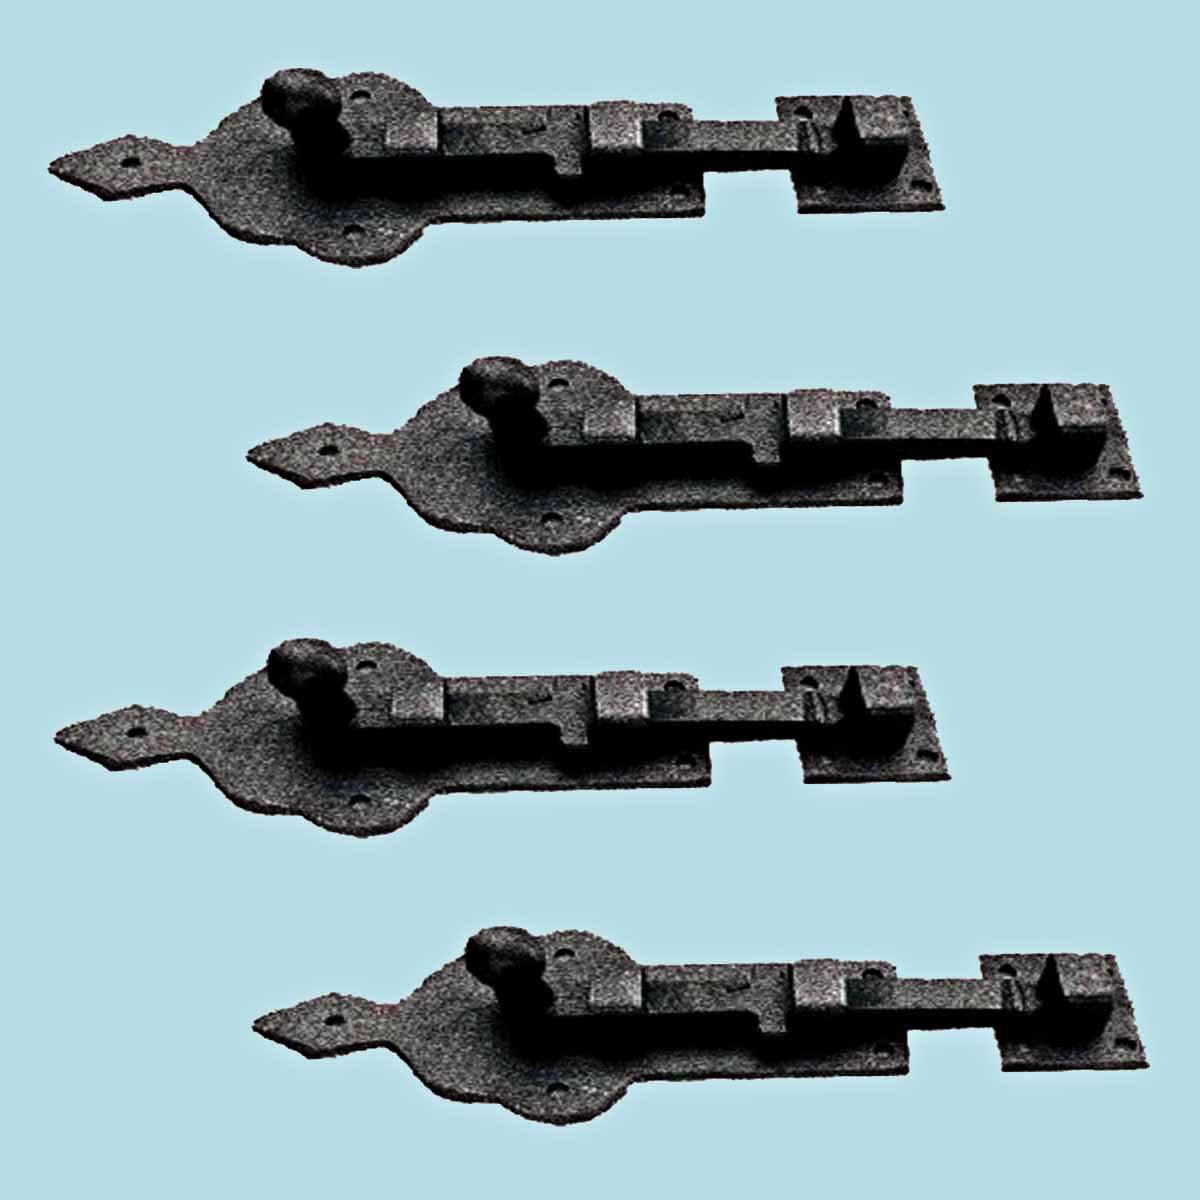 4 Slide Bolts Black Wrought Iron 4'' Wide Set Of 4 by Renovator's Supply (Image #2)